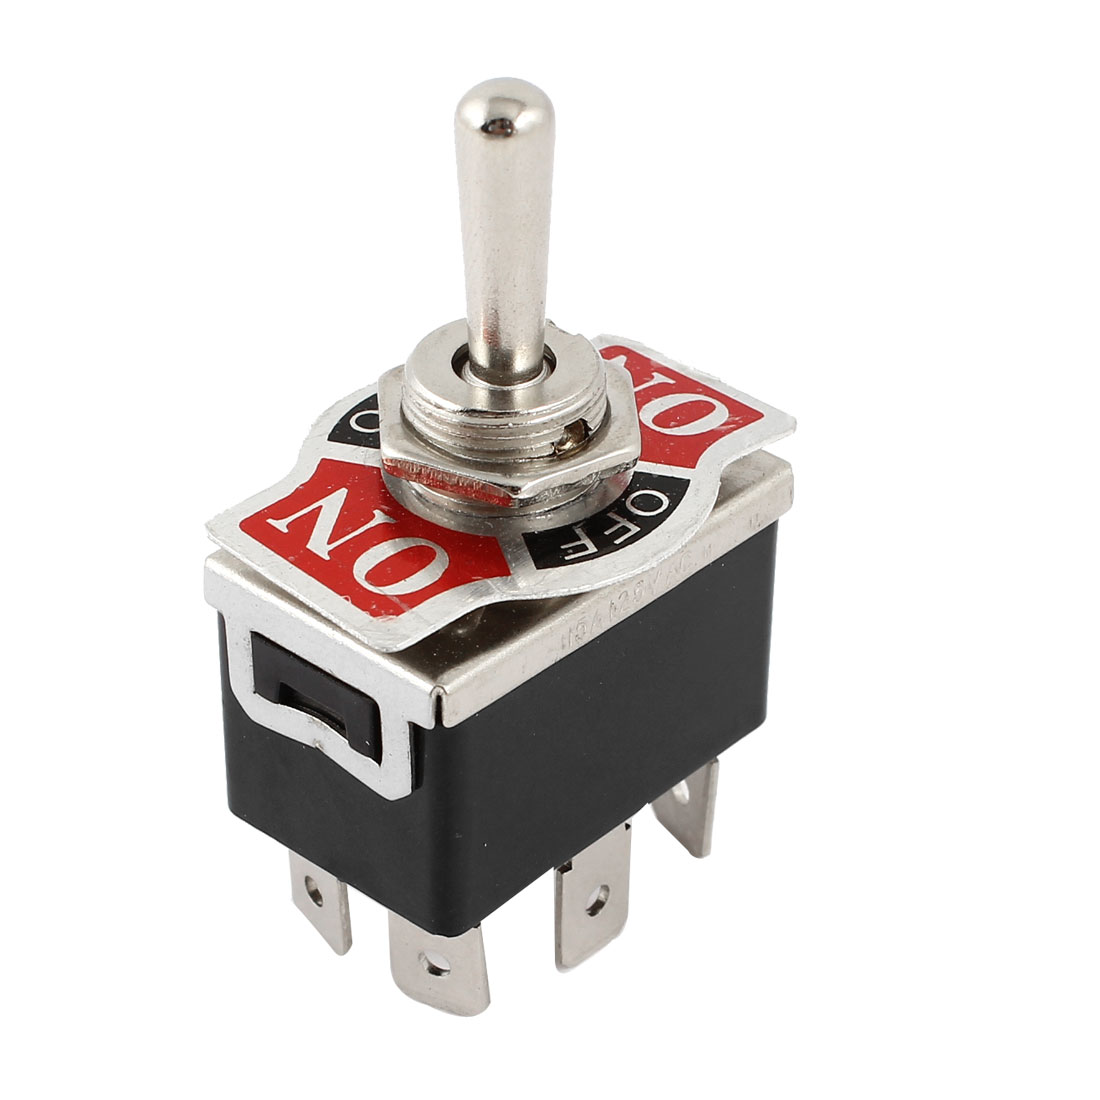 Vehicle Black 6 Pin 3 Position On/Off/On Momentary DPDT Toggle Switch 125V 15A